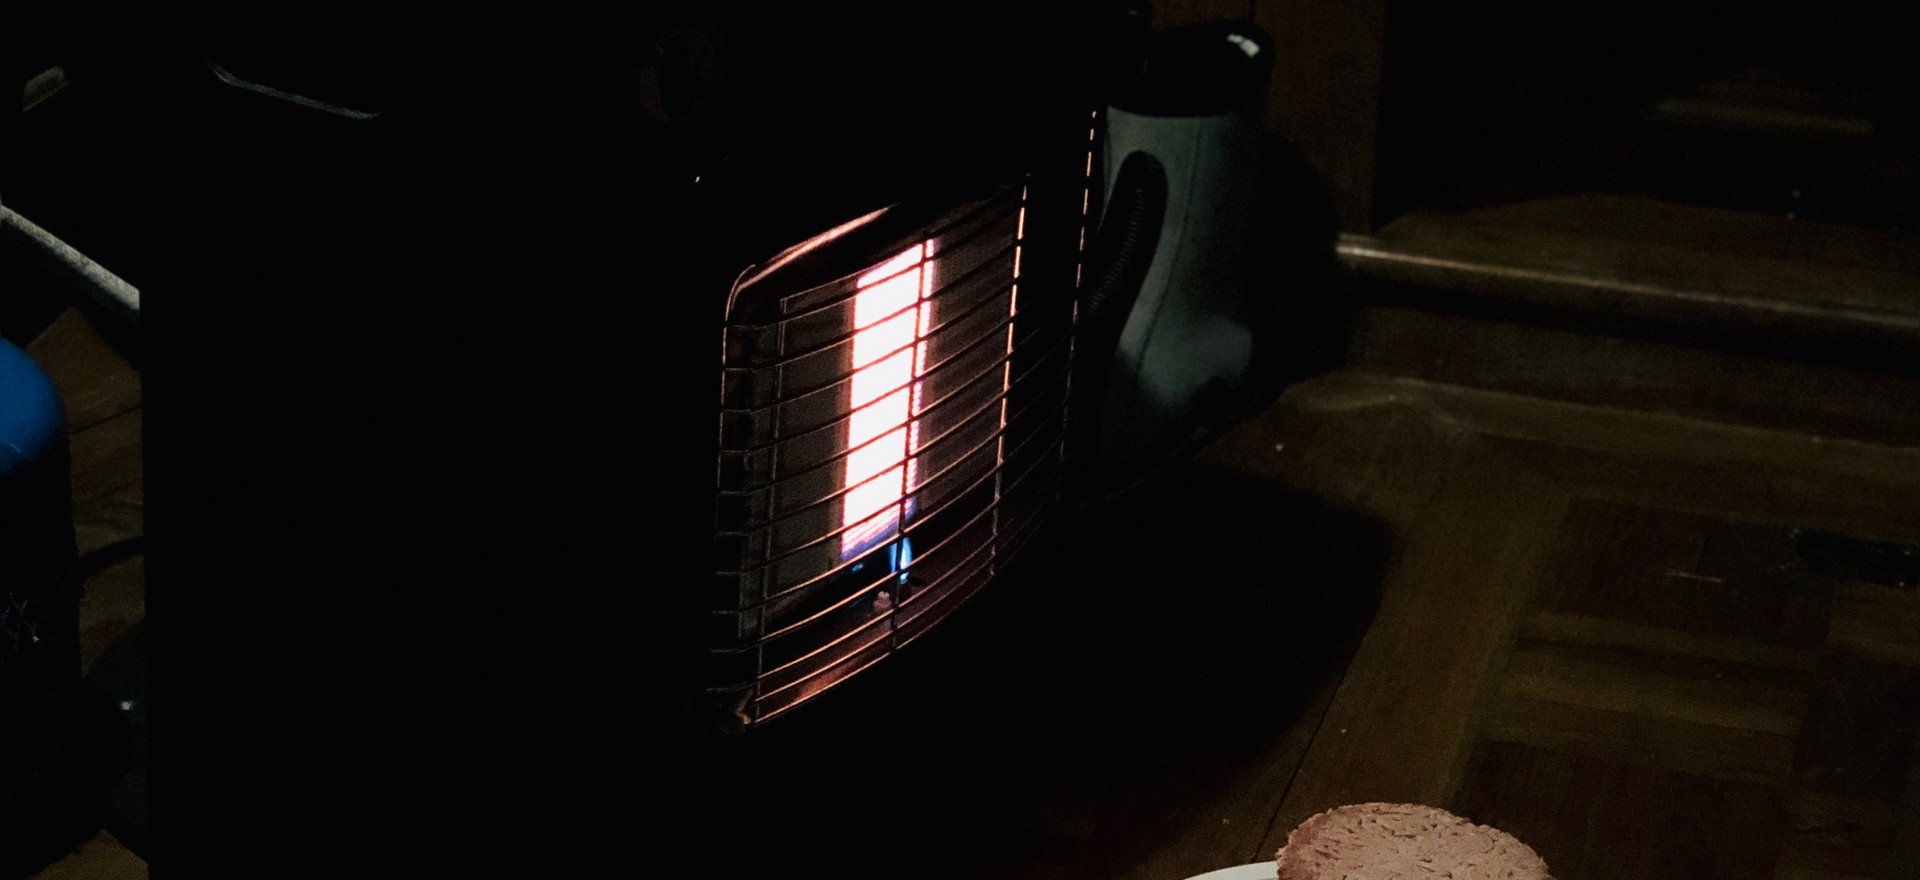 Using the electronic heater to heat up the meat